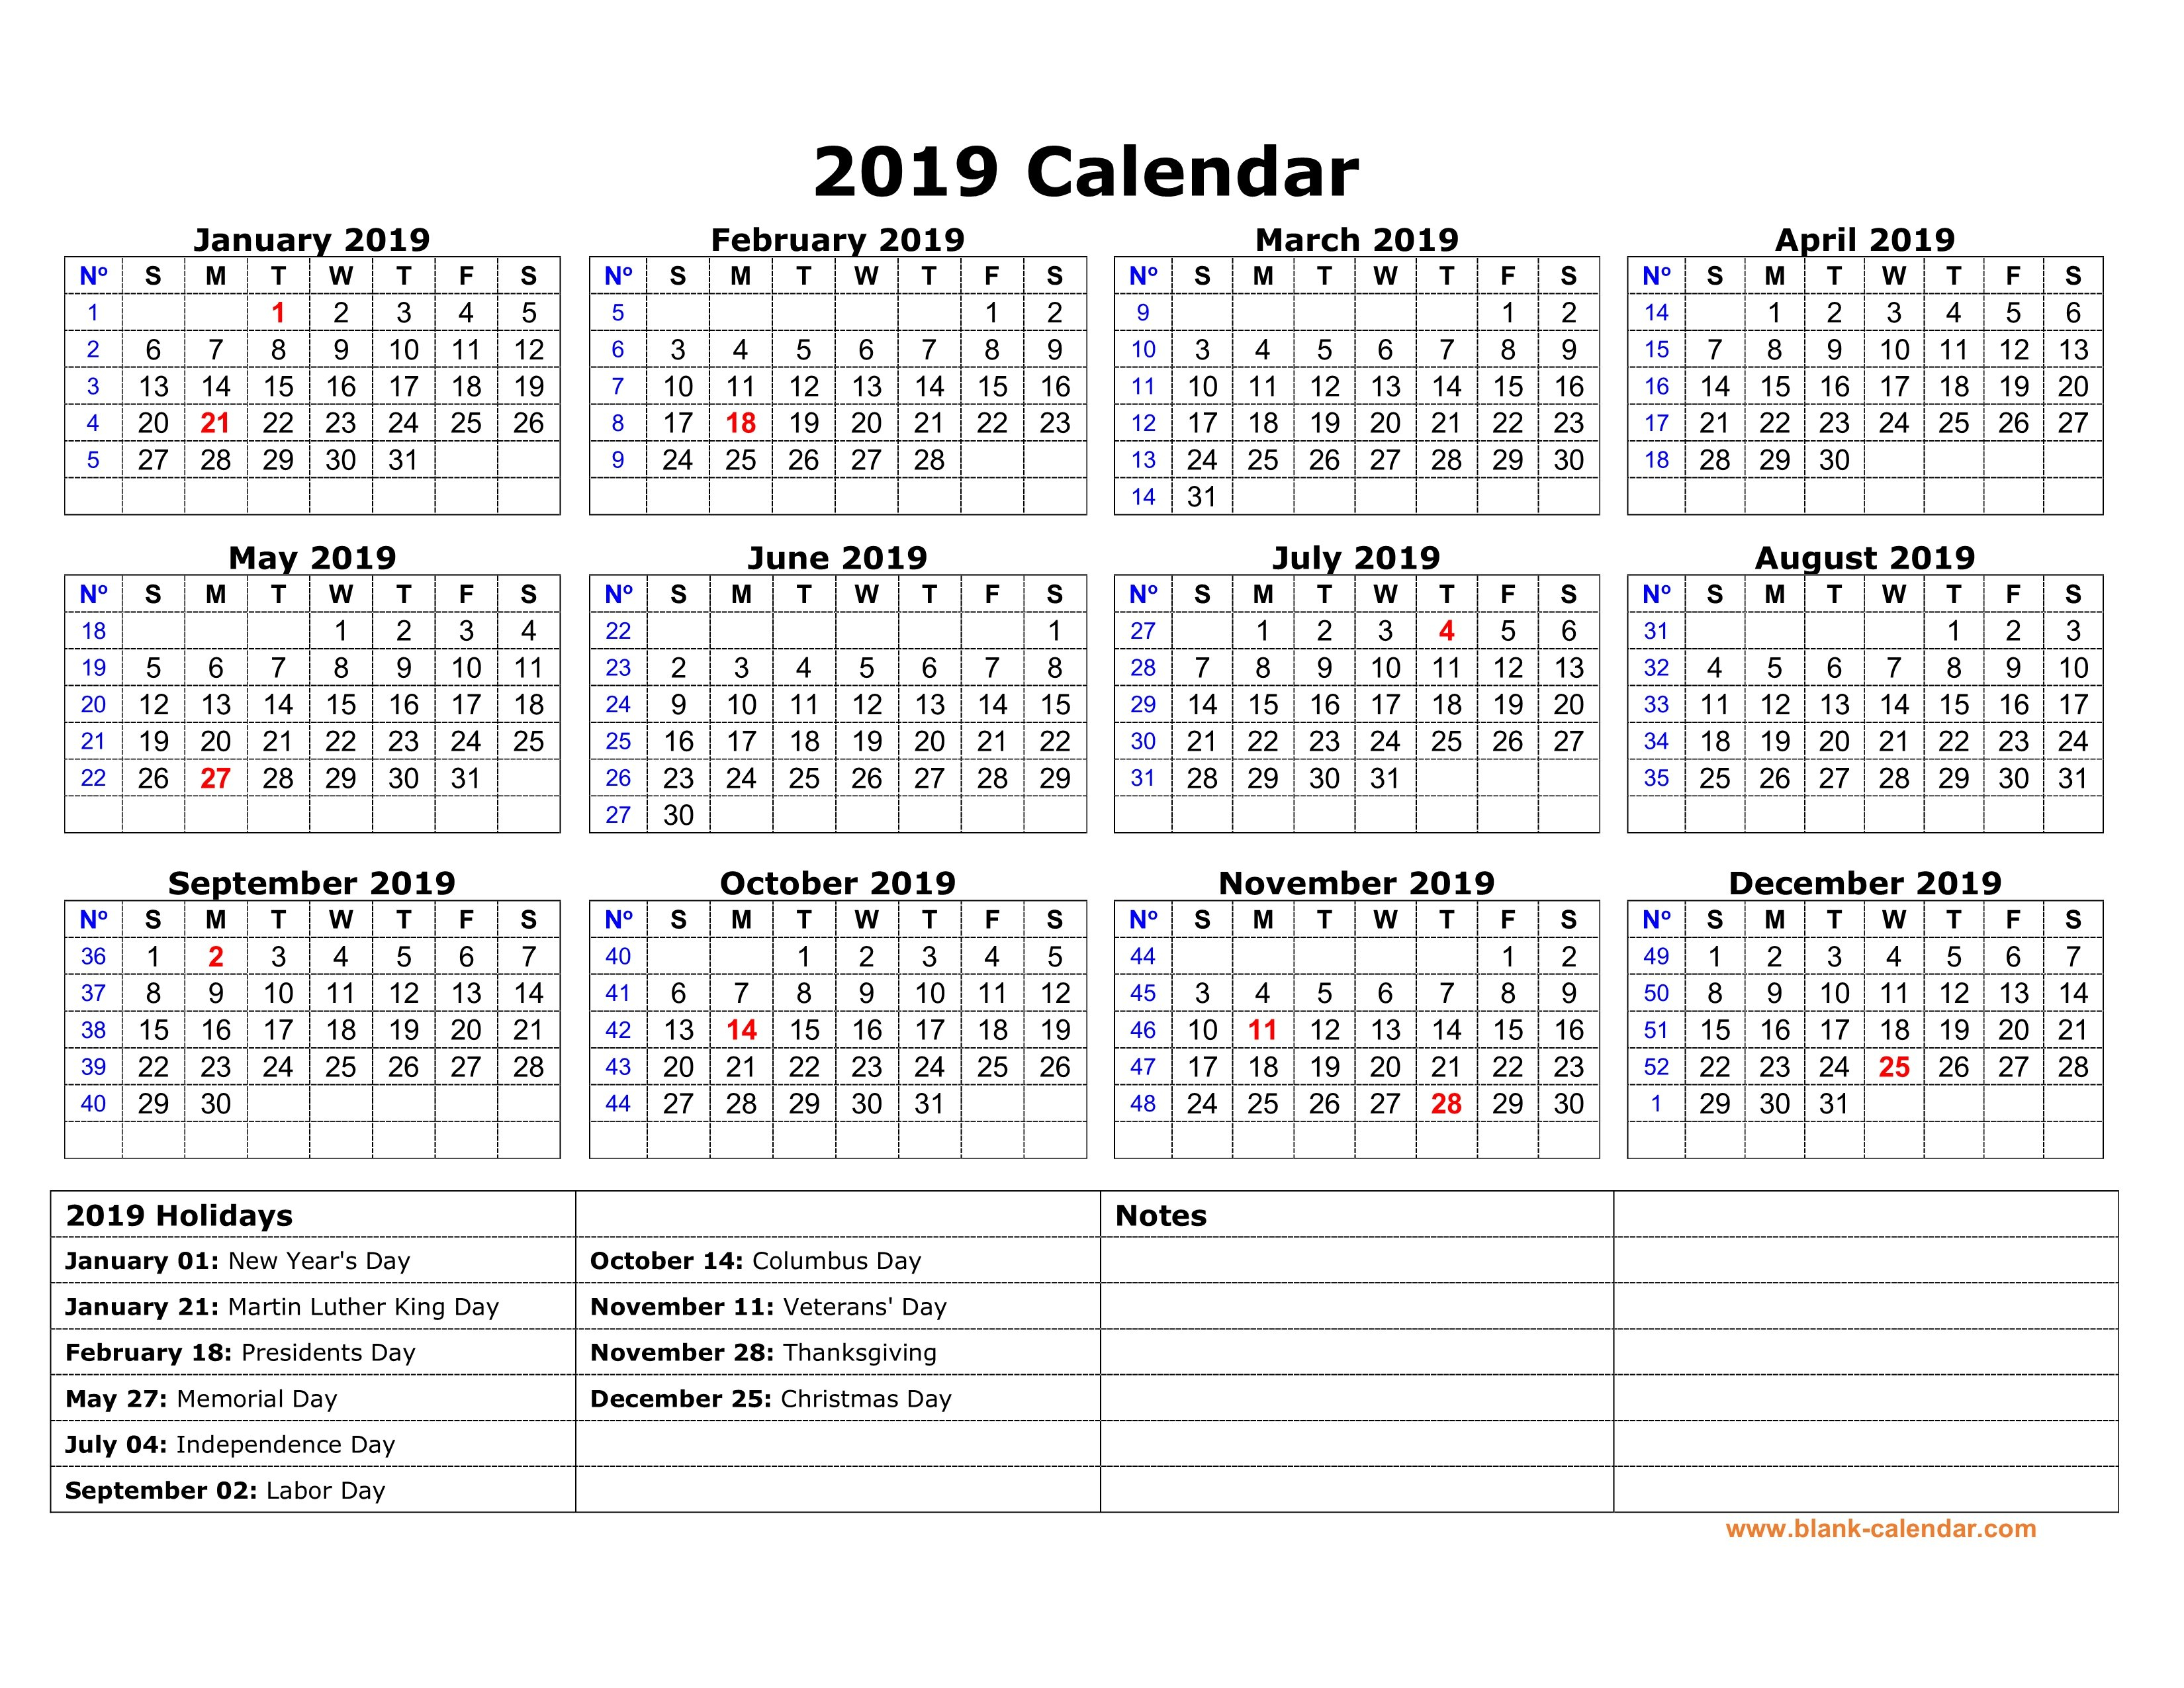 Free Download Printable Calendar 2019 With Us Federal Holidays, One Calendar 2019 With Federal Holidays